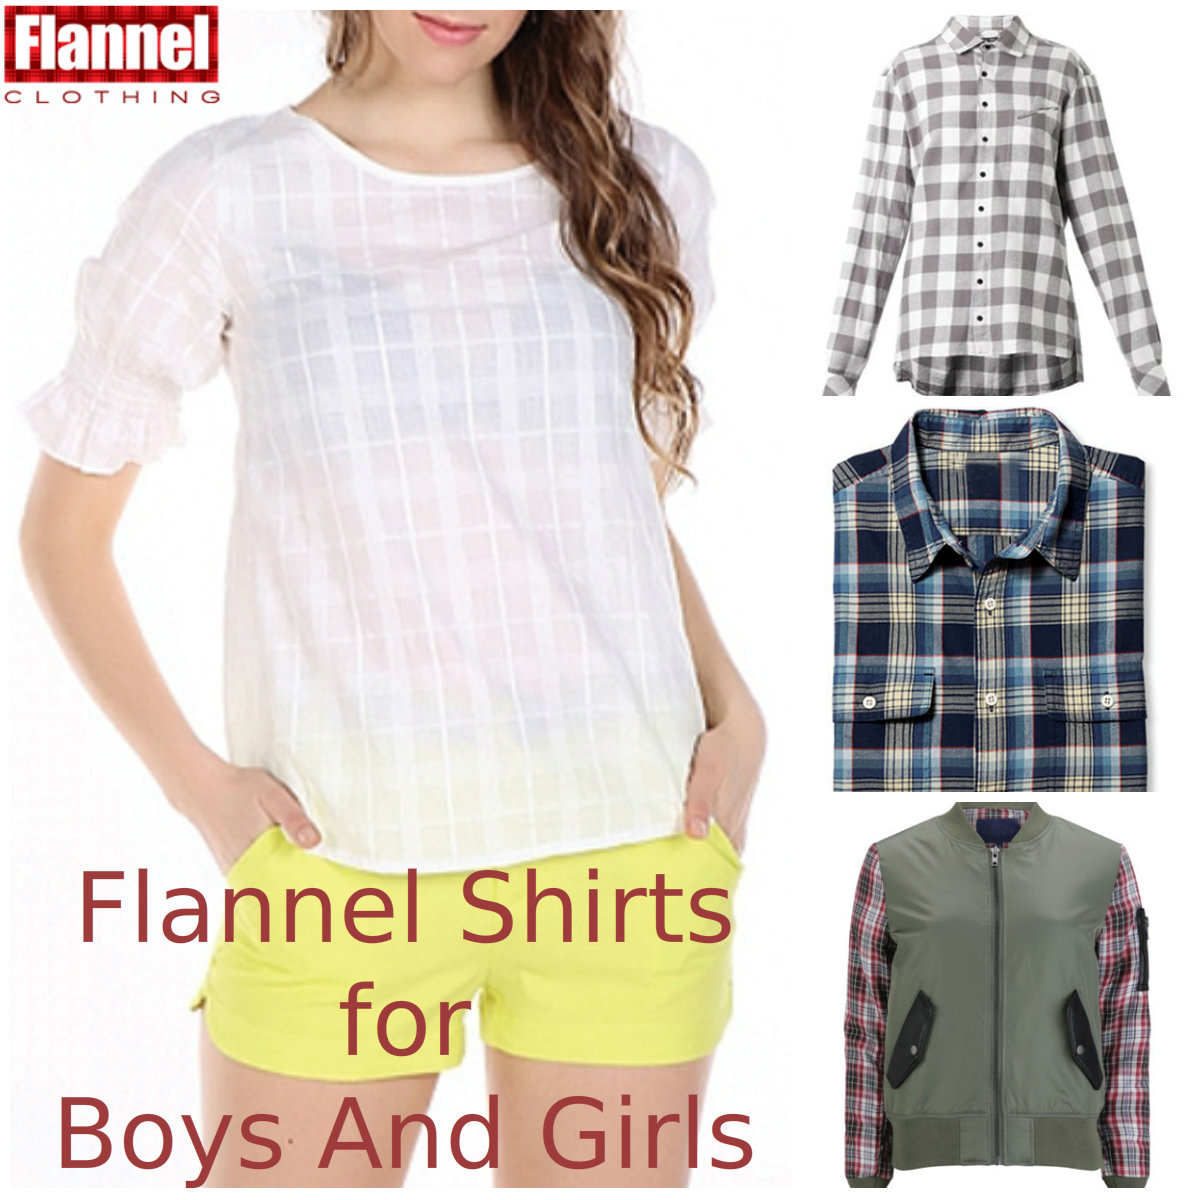 Few Ways For Boys And Girls To Deck Up In Flannel Shirts